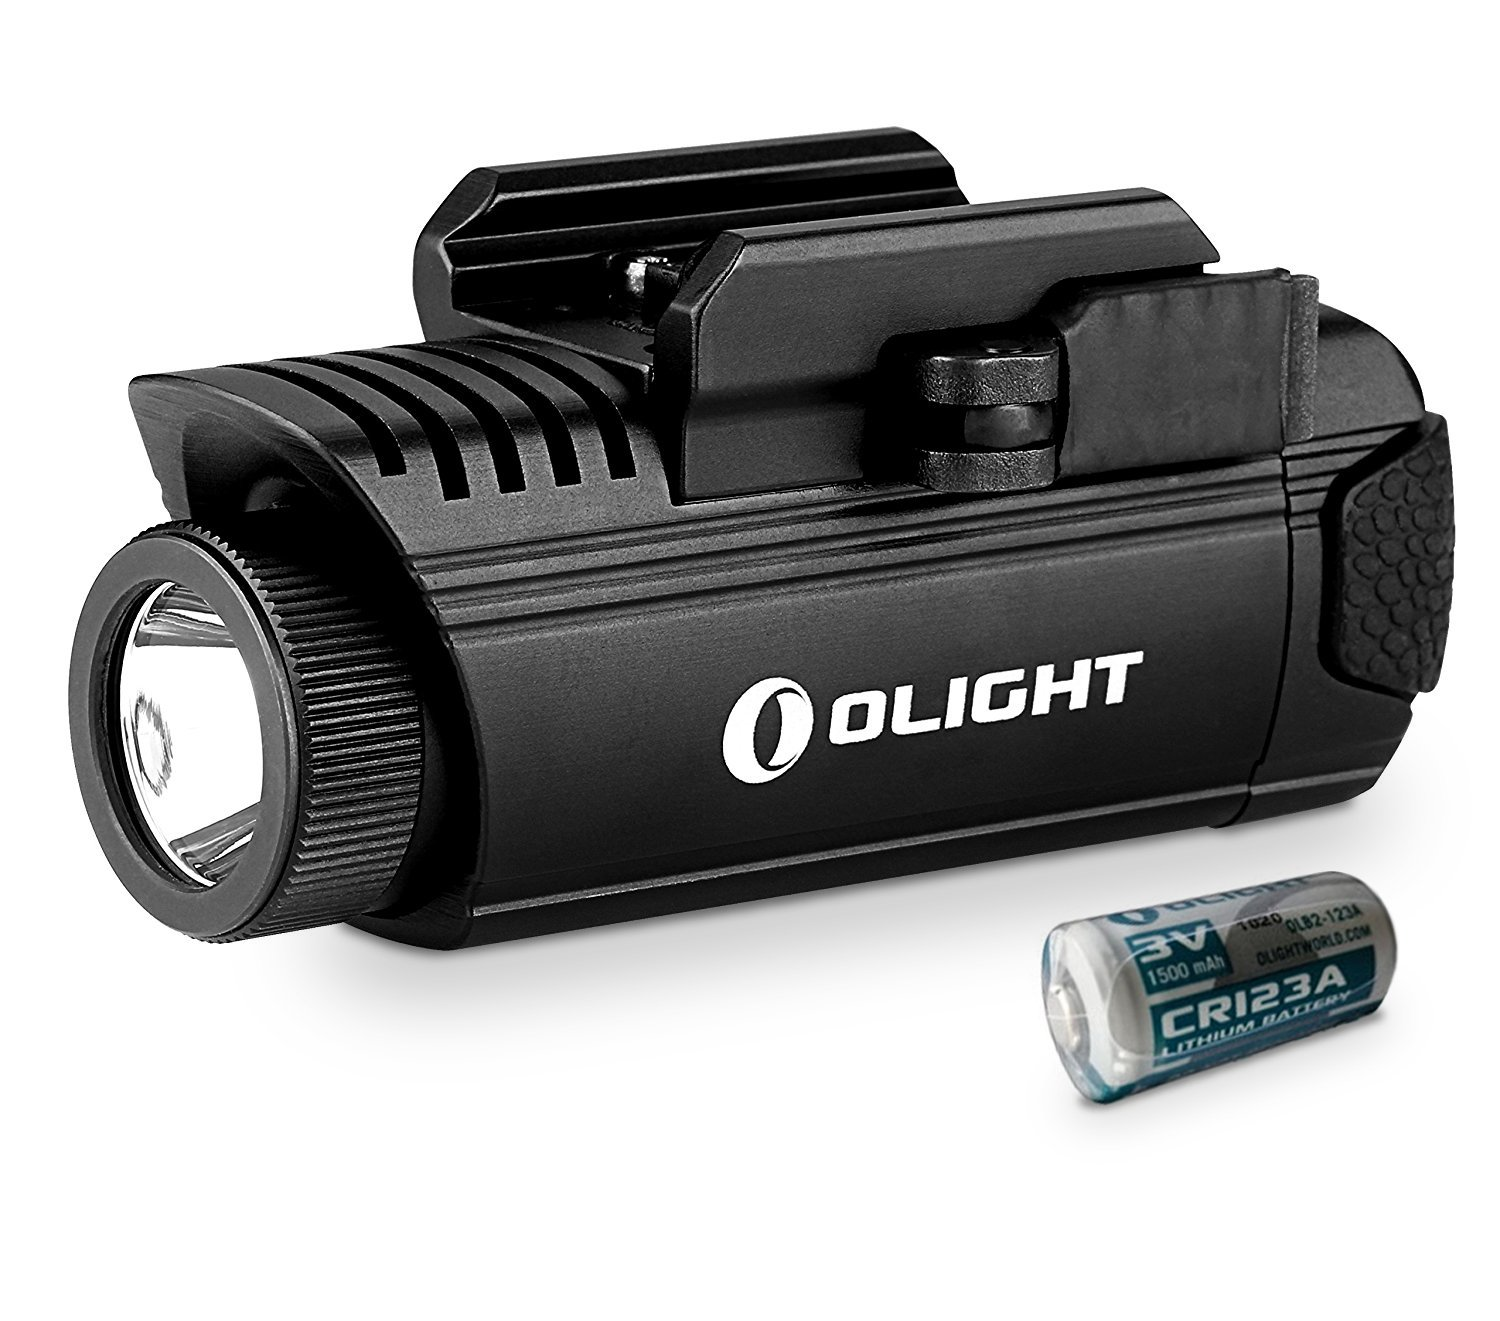 Olight PL-1 II Valkyrie 450 Lumens LED Tactical Weapon Light with 1600mAh CR123A Battery, Anti-Reflective and IPX6 Waterproof